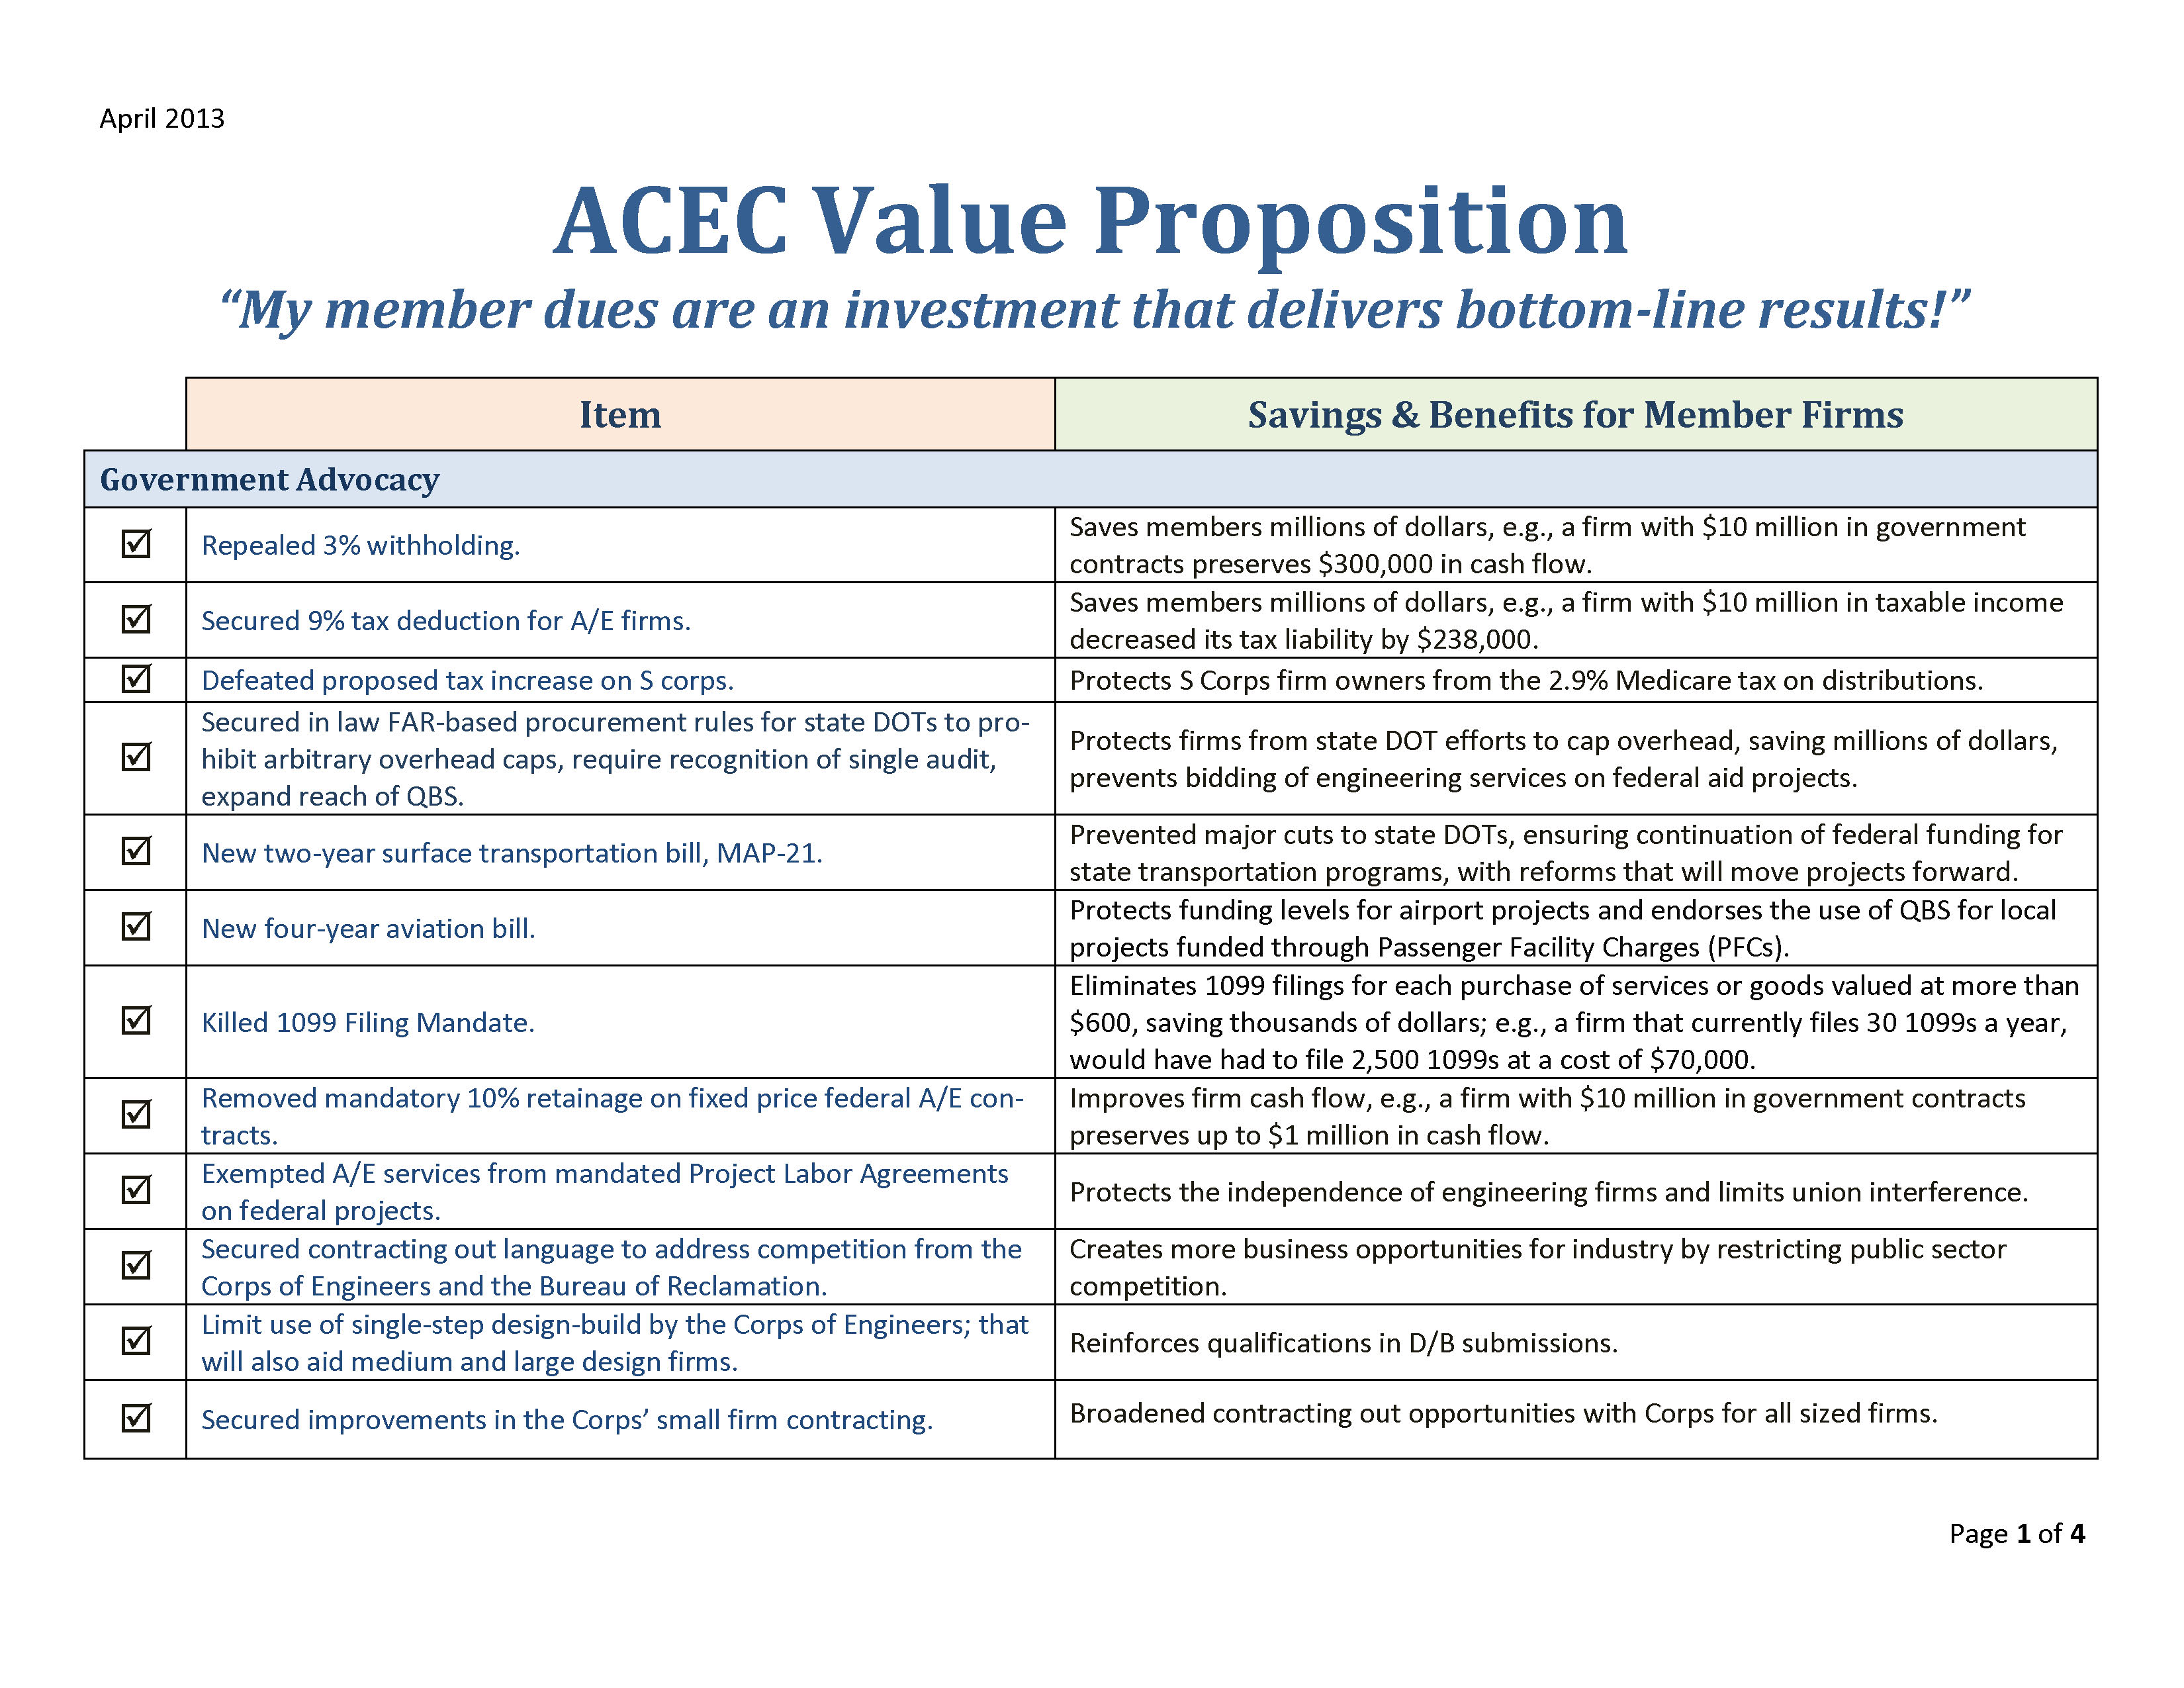 value proposition summary_page_1